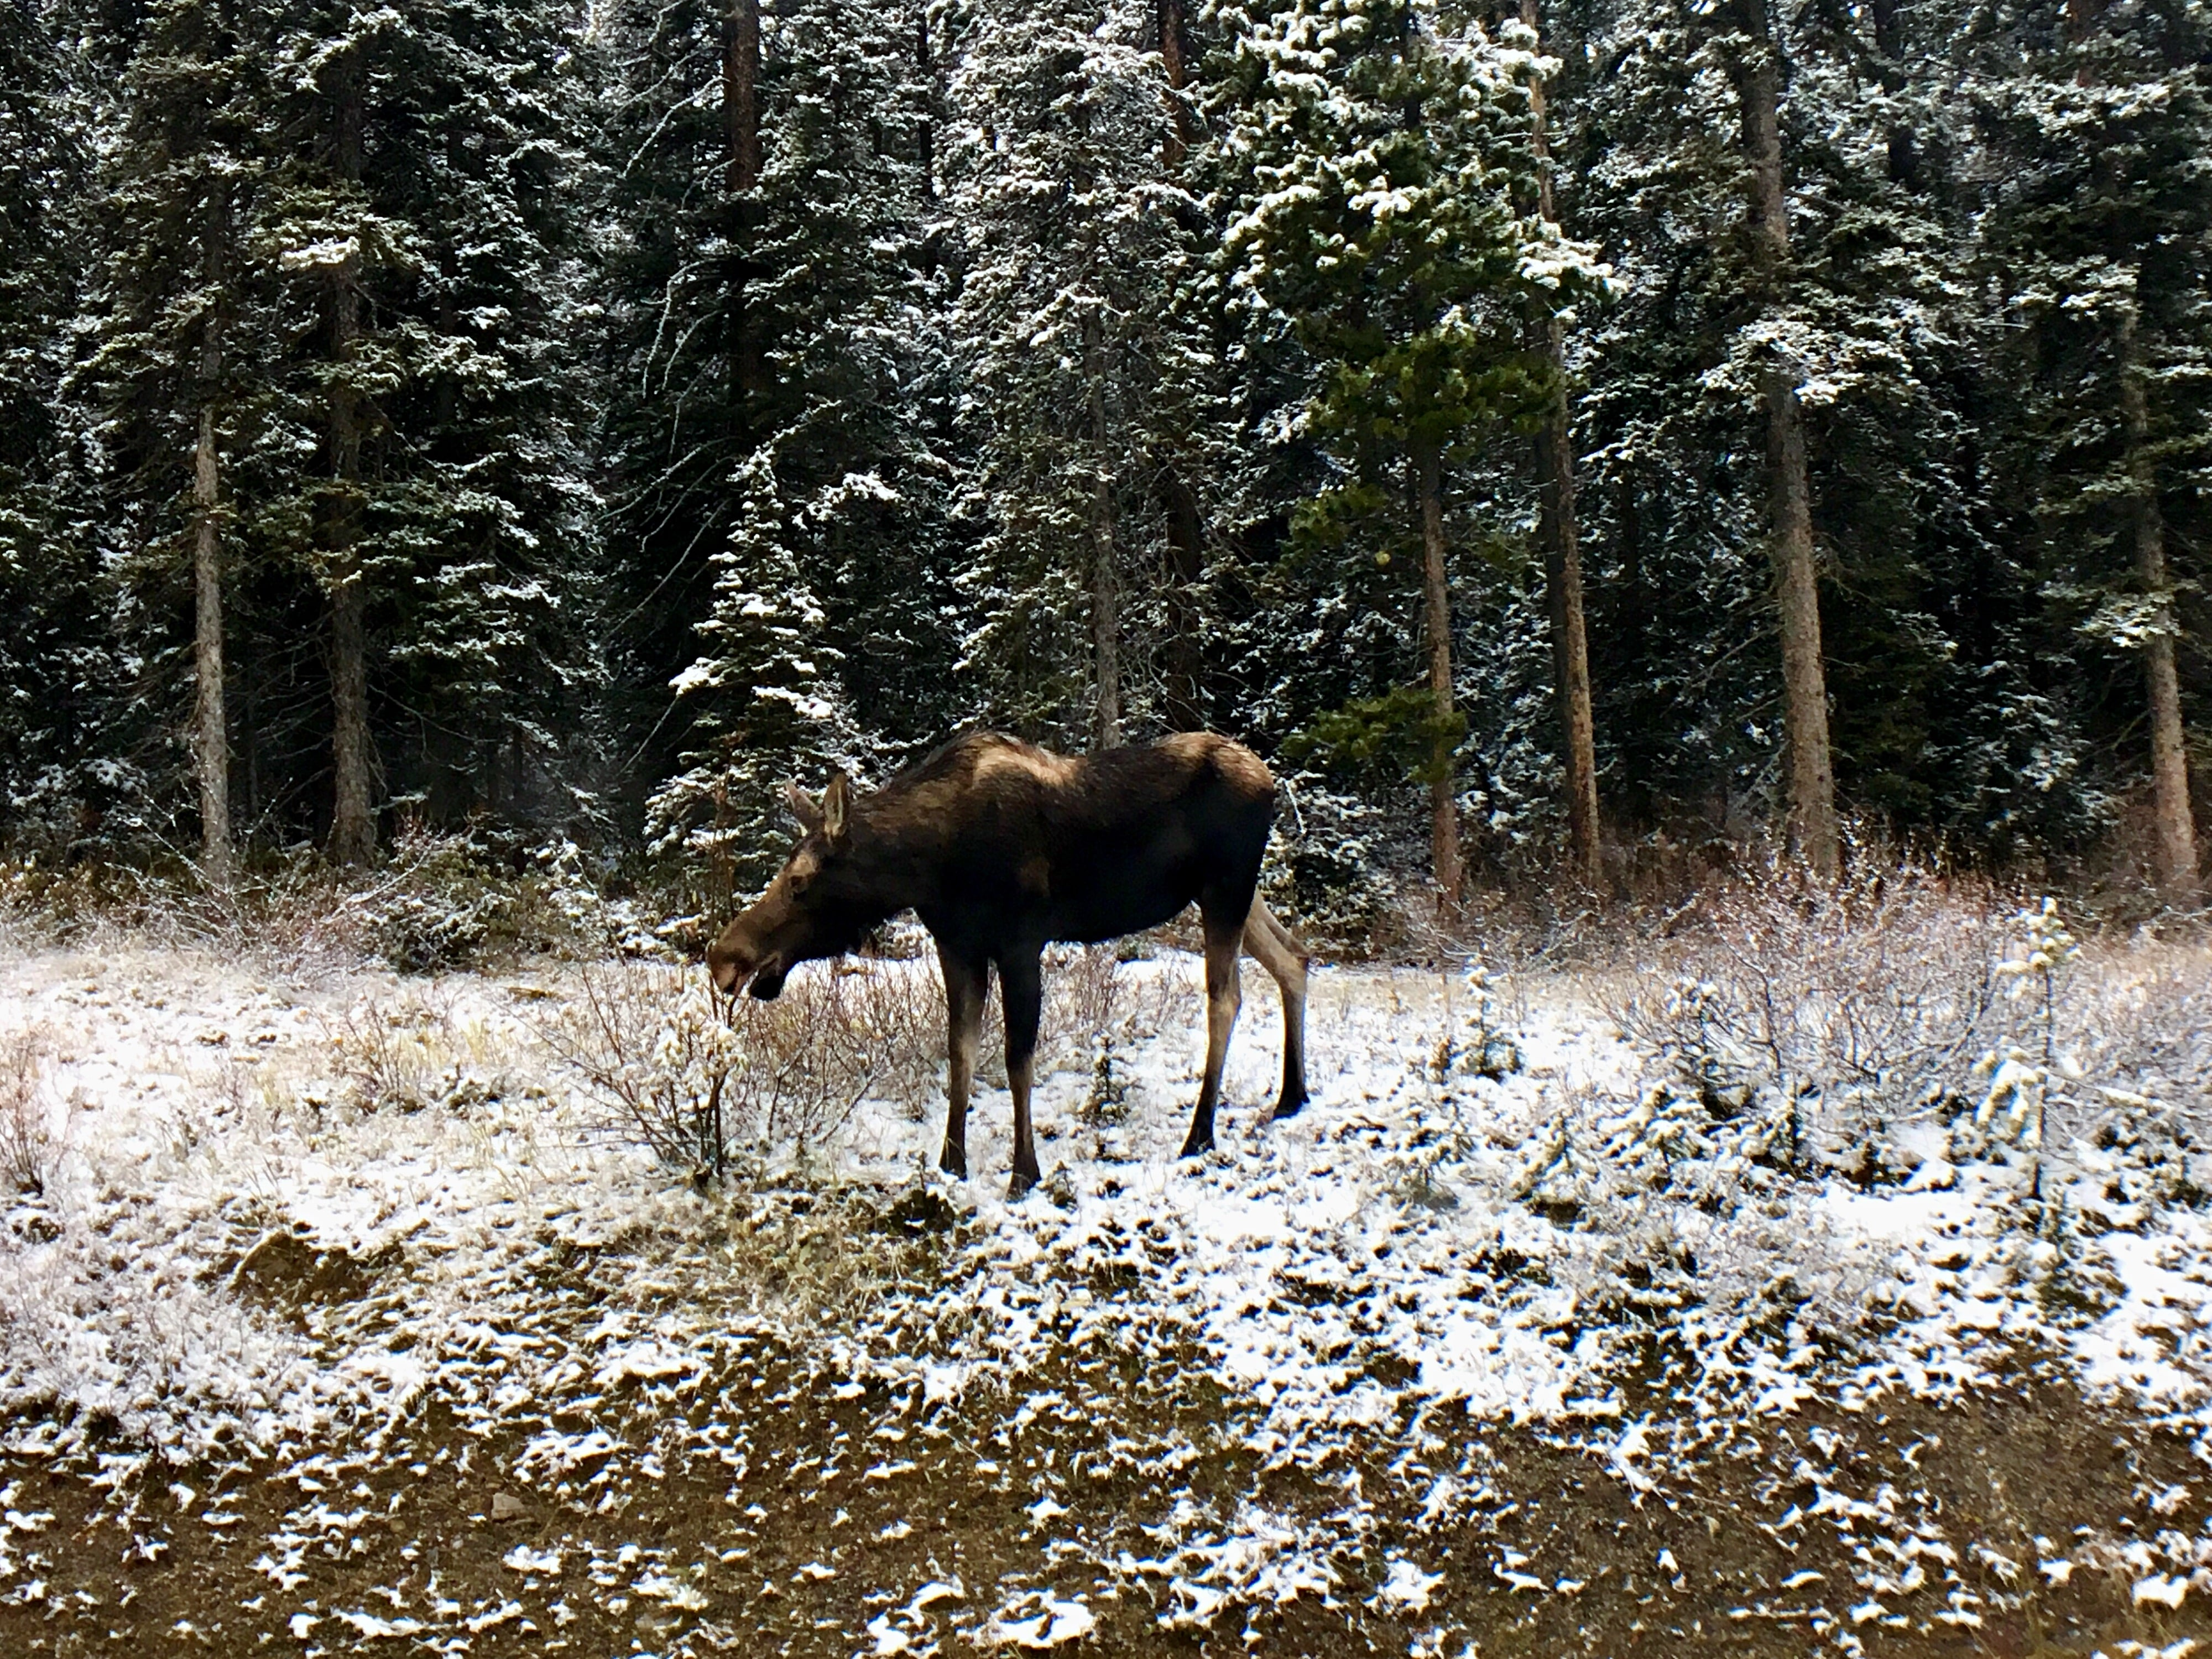 A beautiful moose eating on the side of the road in Banff National Park!